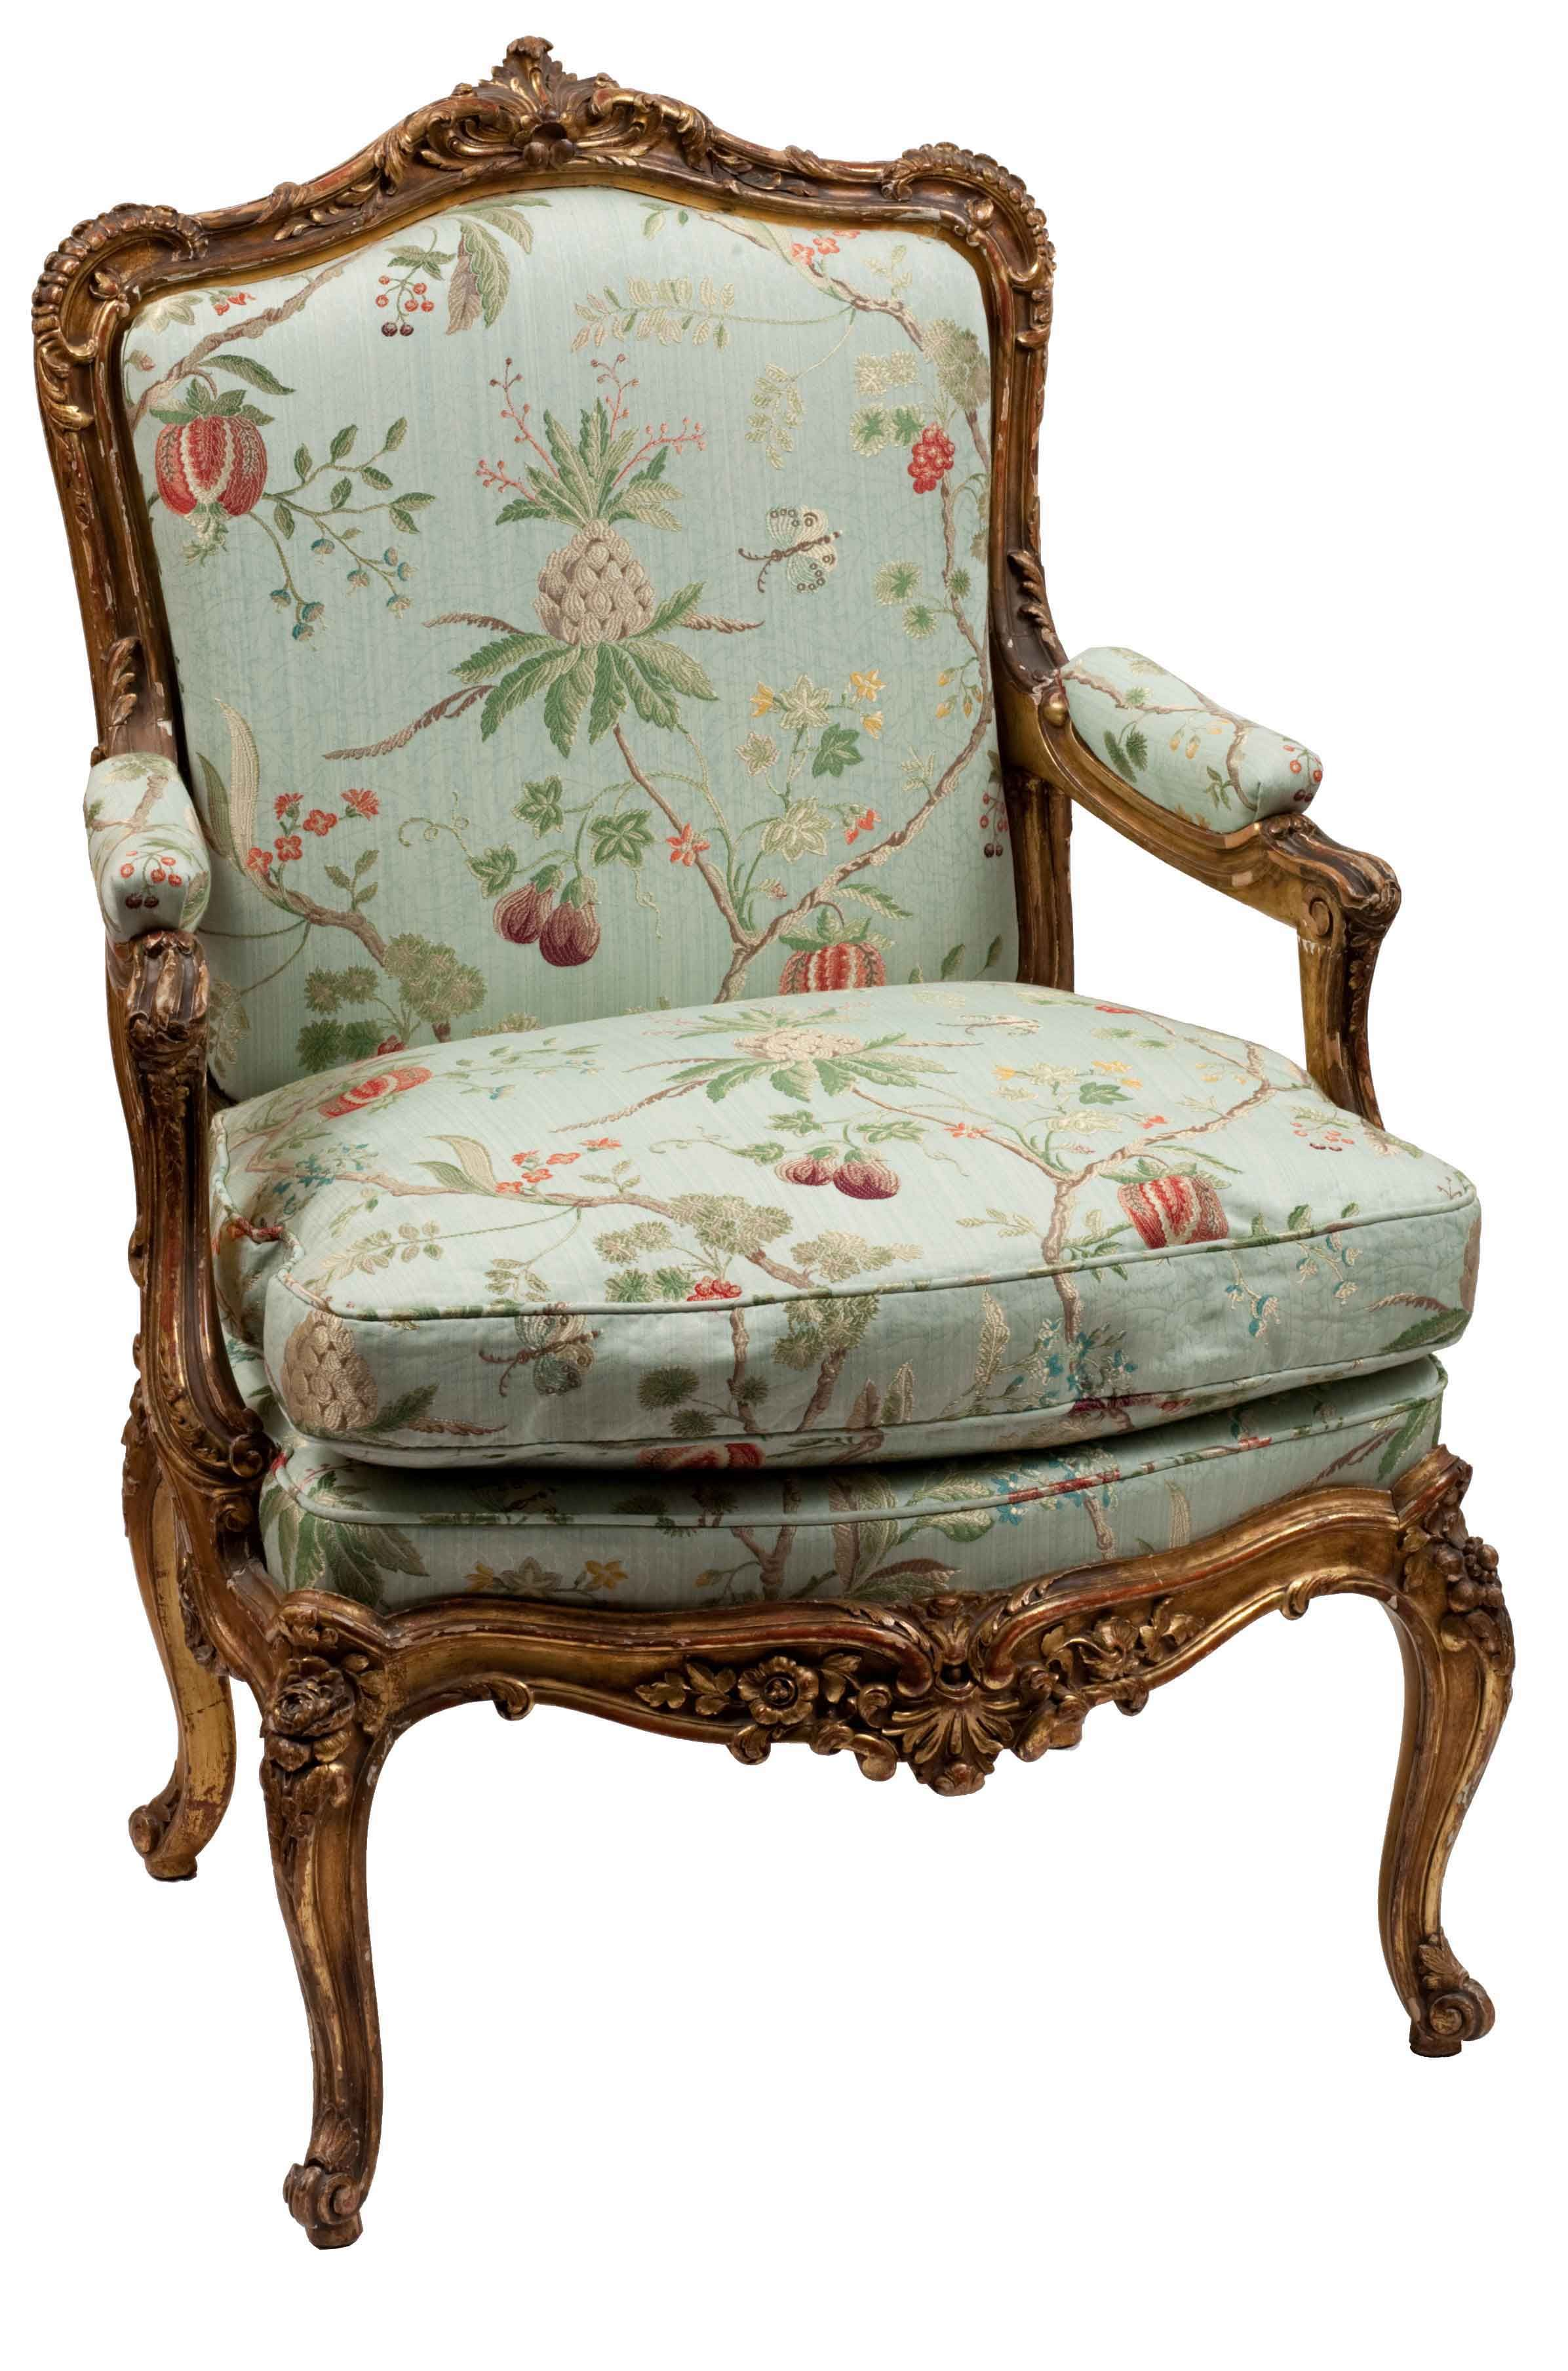 Louis Xv Chair Crate And Barrel Curran Great Style Arm That I Love For The Home